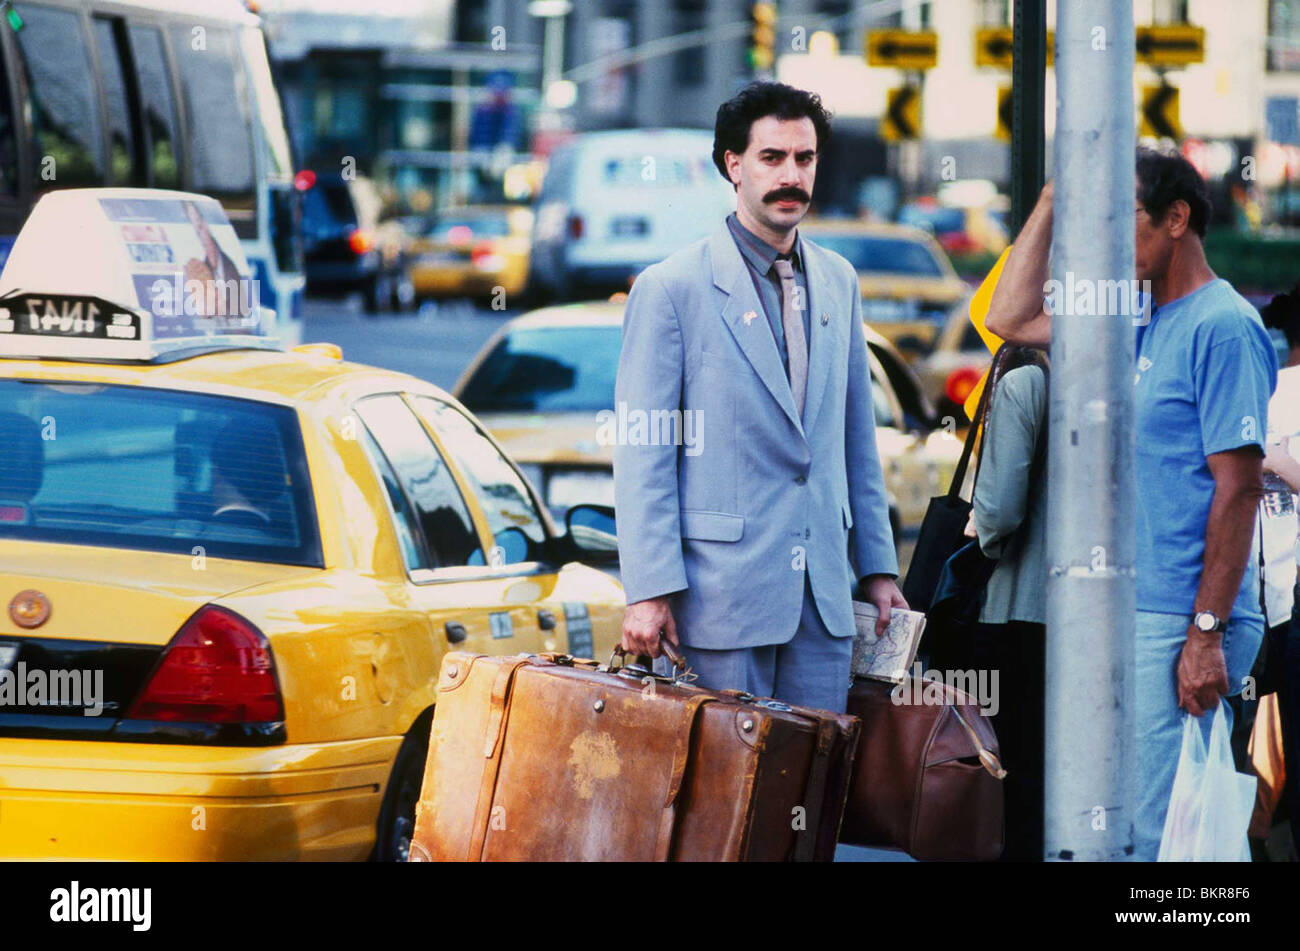 Borat Cultural Learnings Of America For Make Benefit Glorious Nation Stock Photo Alamy